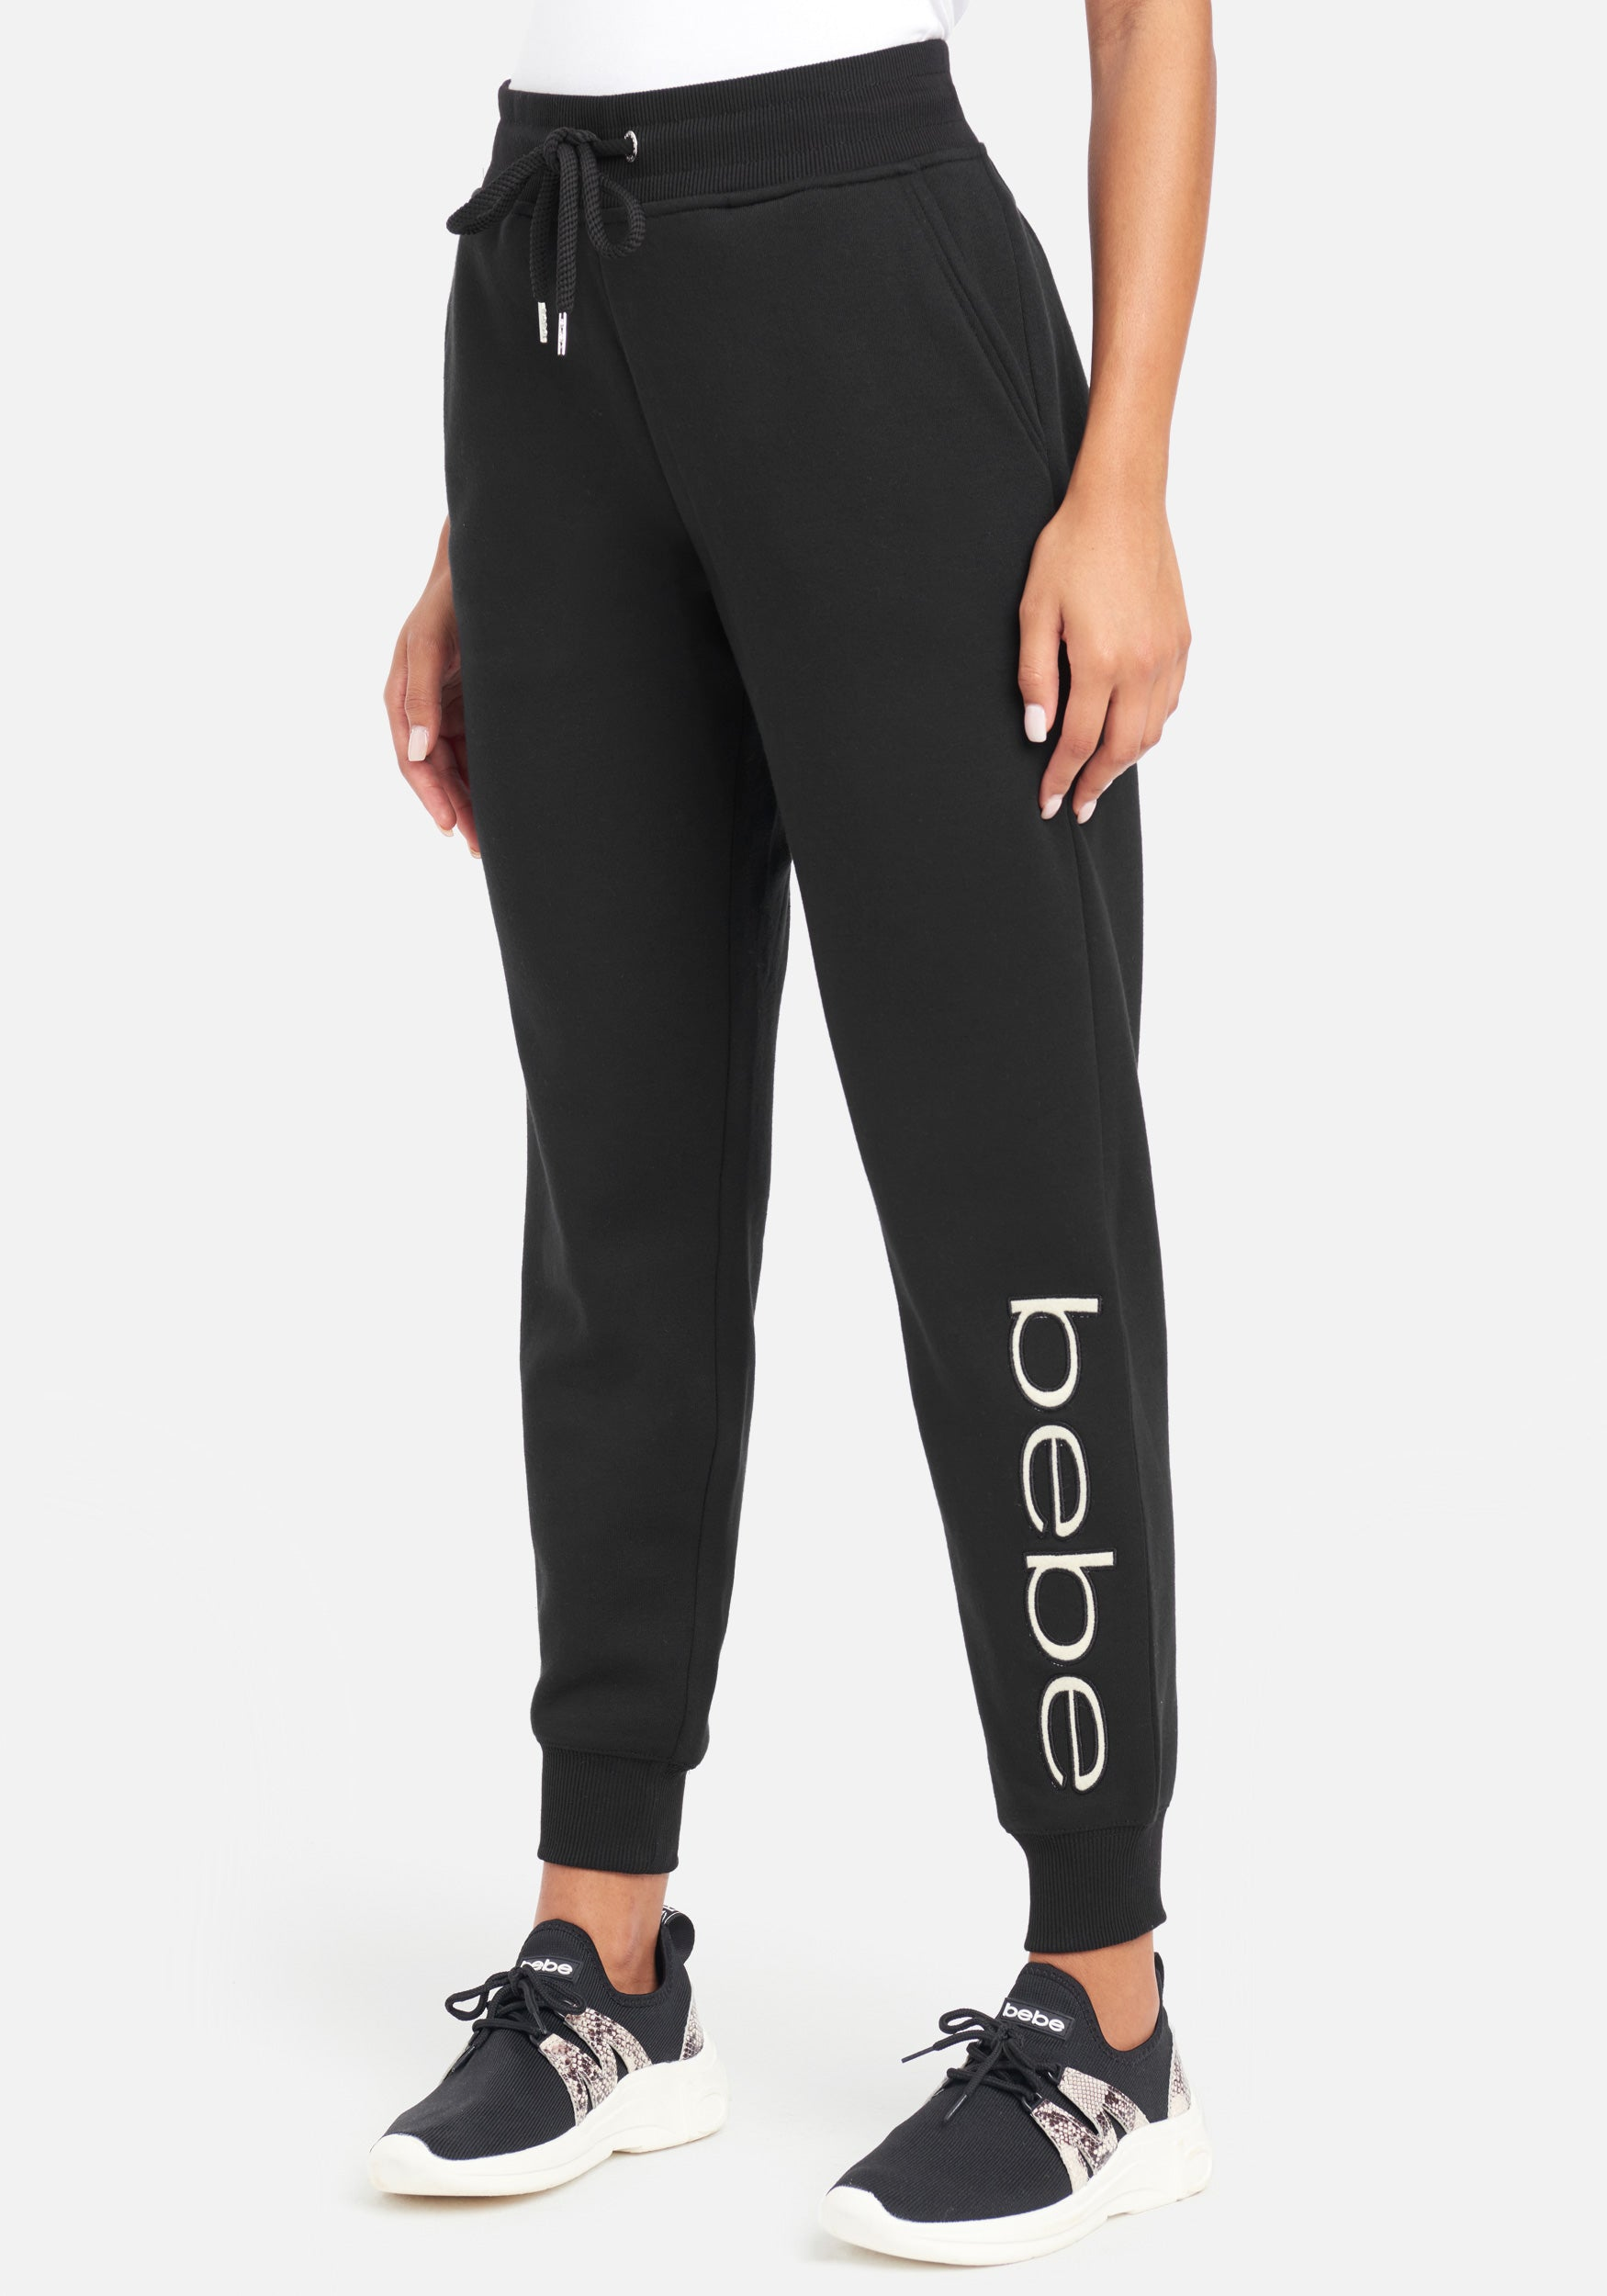 Women's Bebe Sport Sherpa Logo Patch Jogger Pant, Size Small in Black